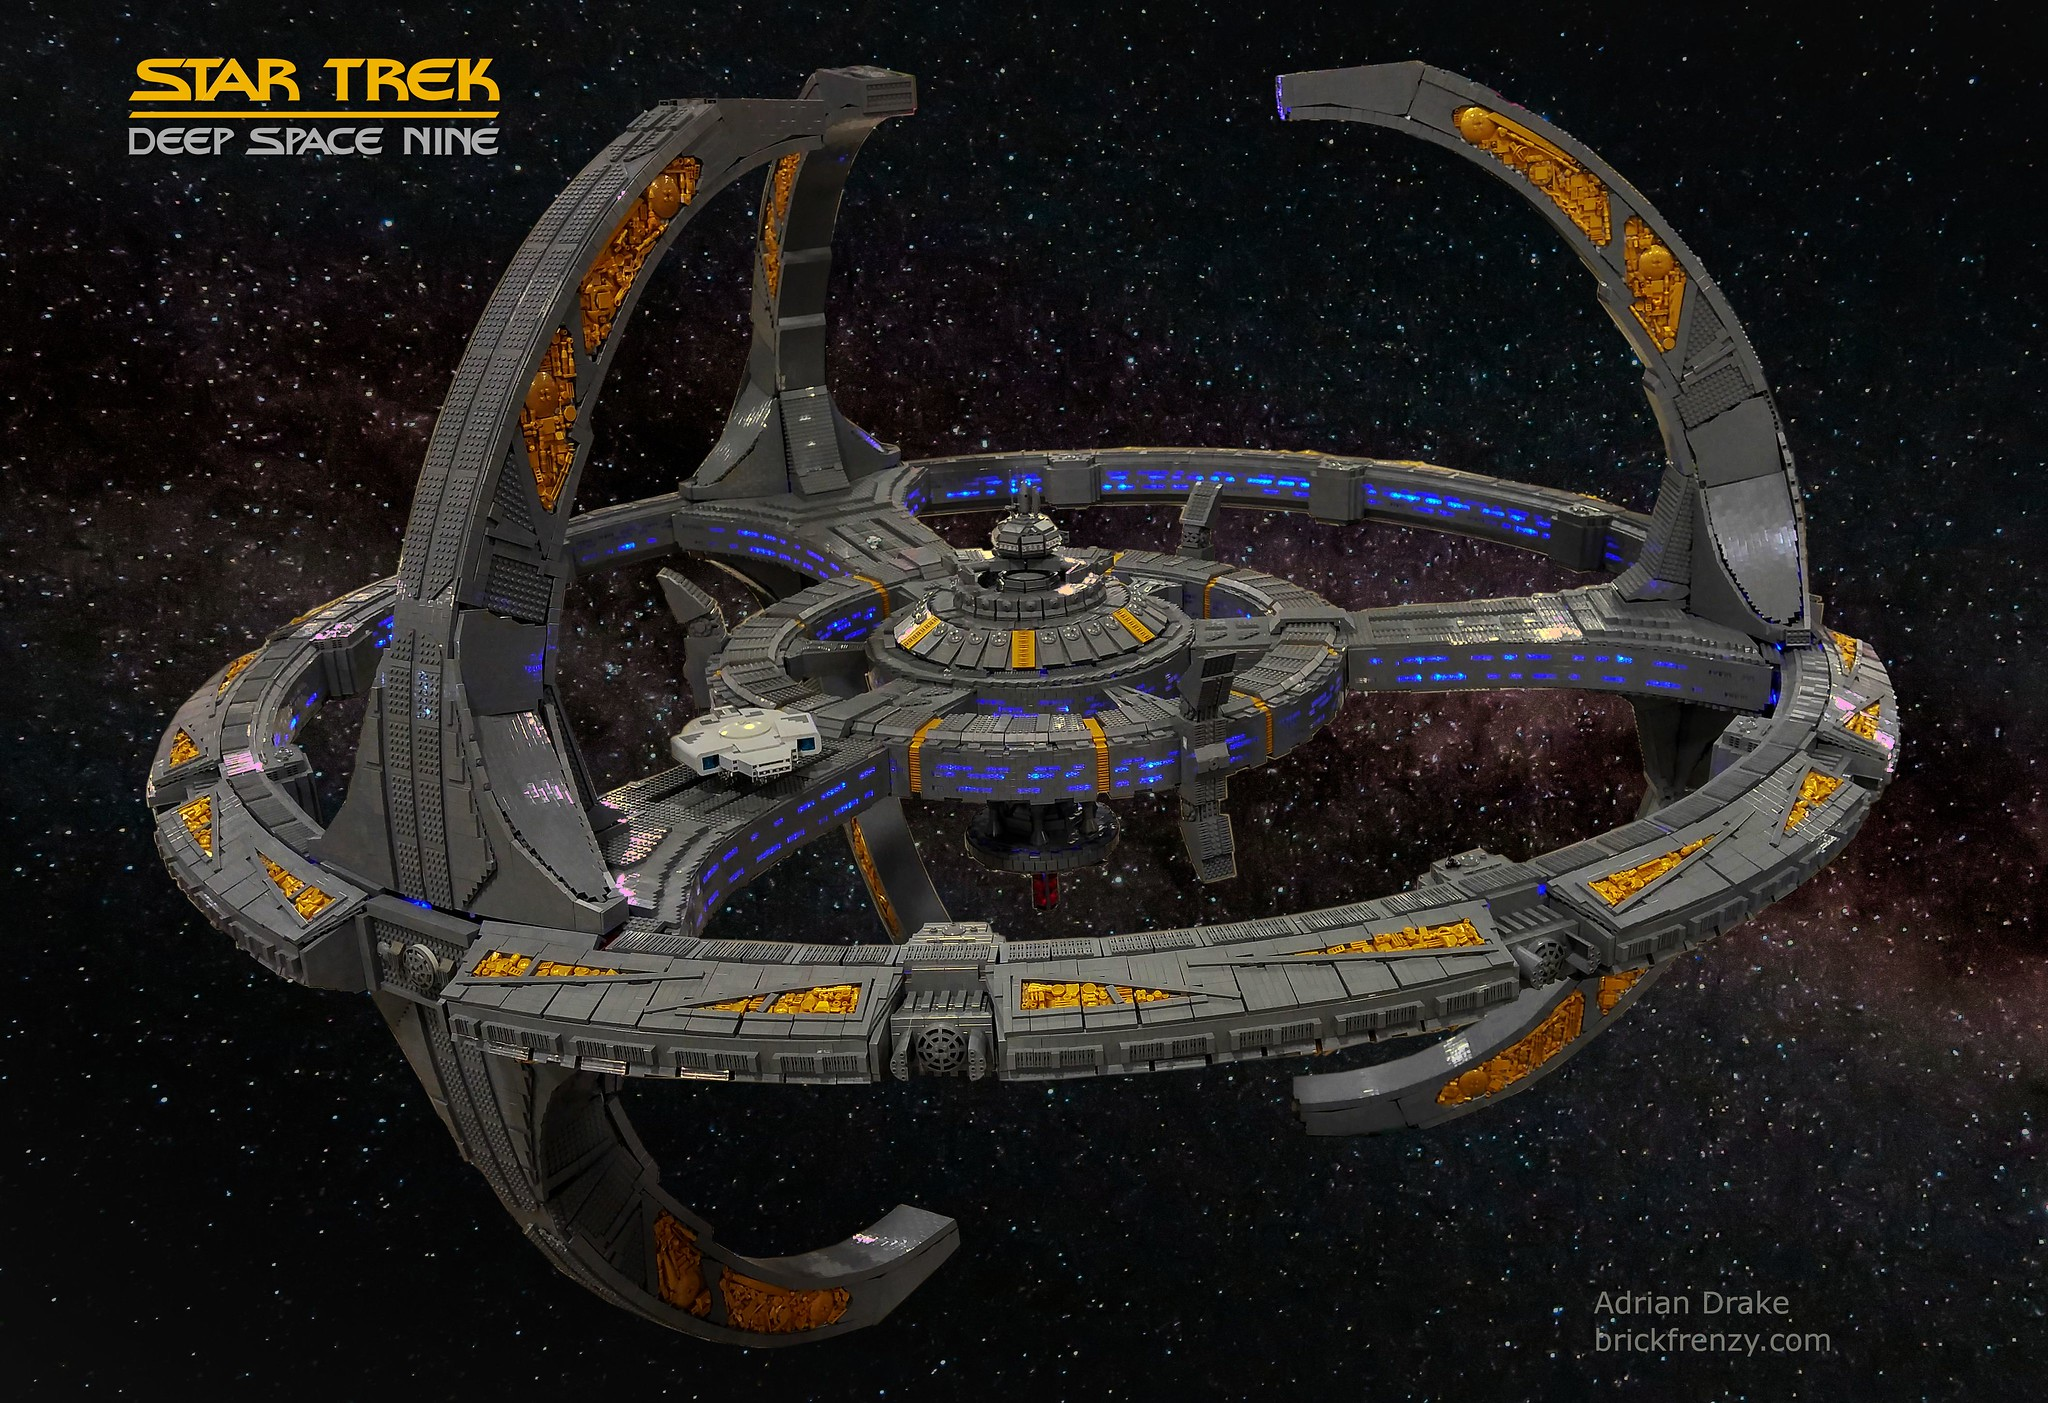 This epic recreation of Deep Space Nine is so huge, I can practically fit inside!